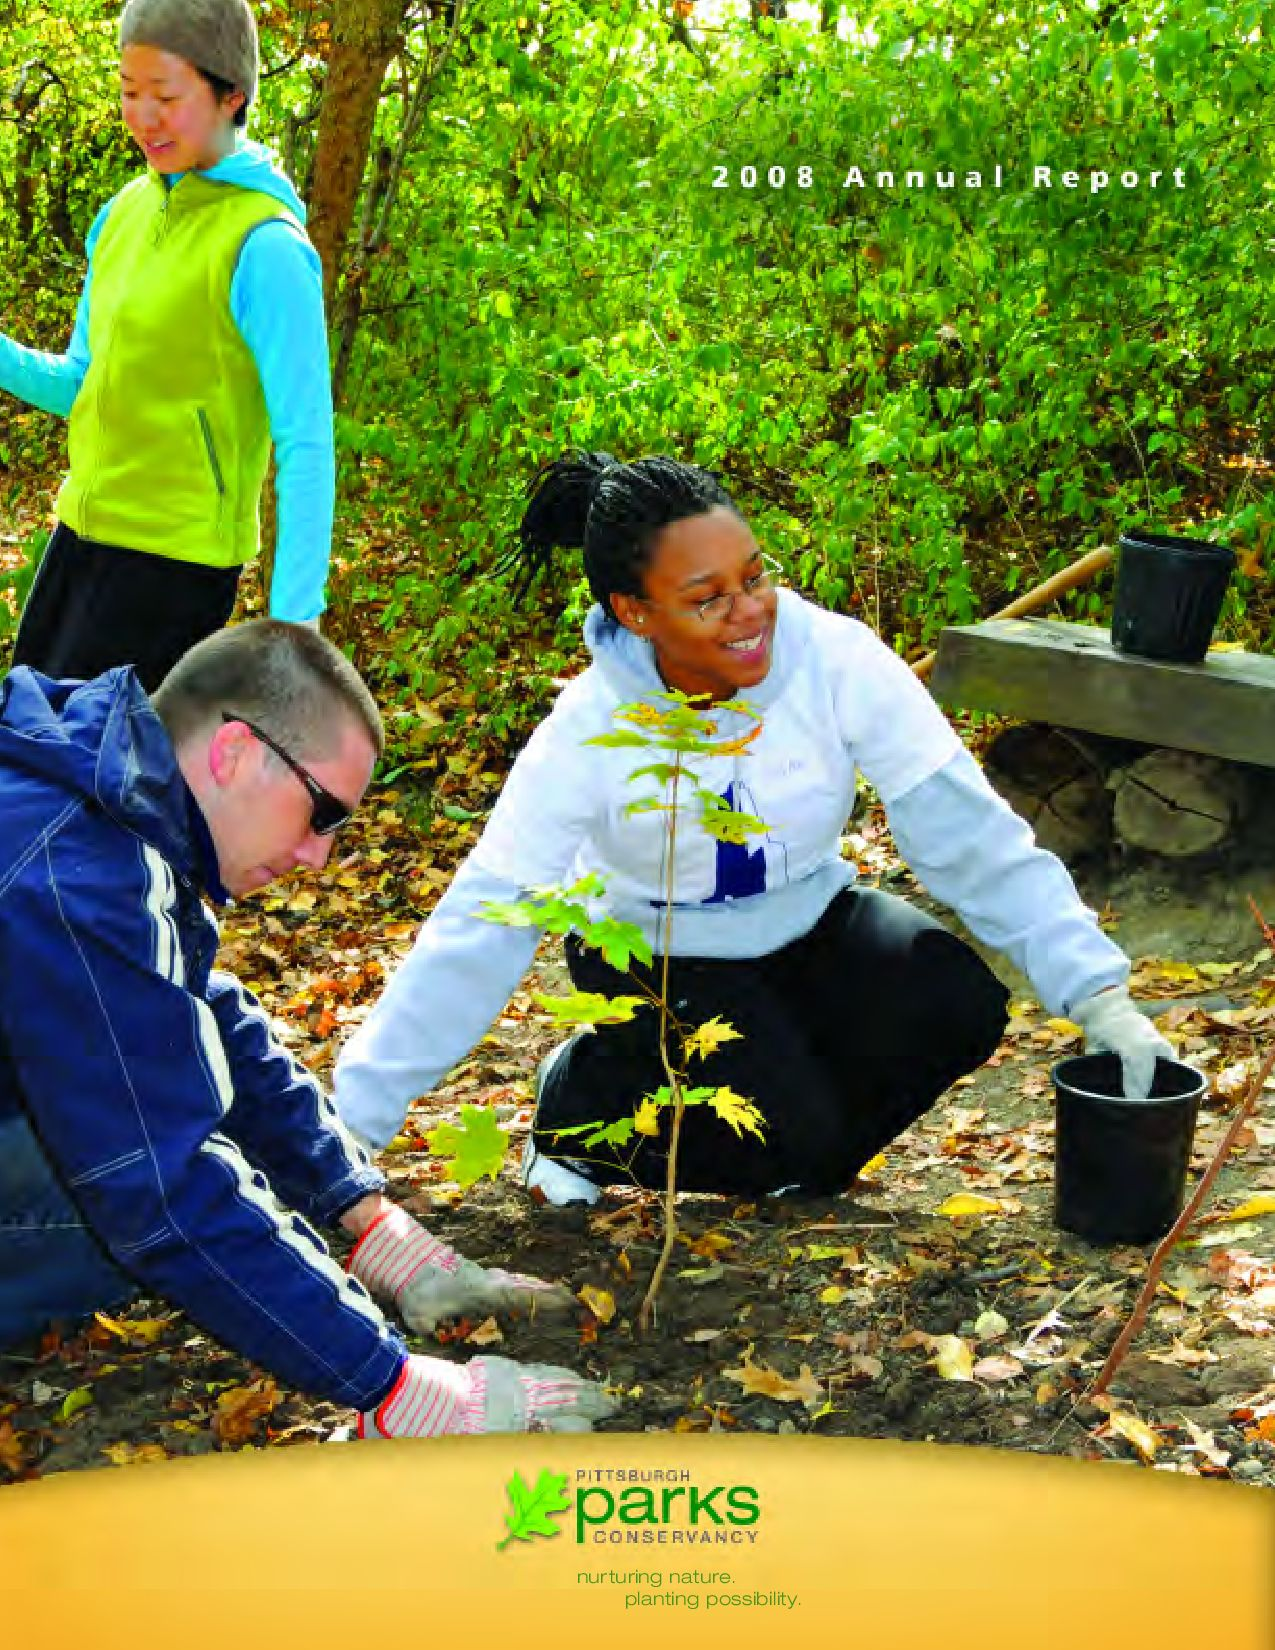 annual report of the pittsburgh parks conservancy by 2008 annual report of the pittsburgh parks conservancy by pittsburgh parks conservancy issuu